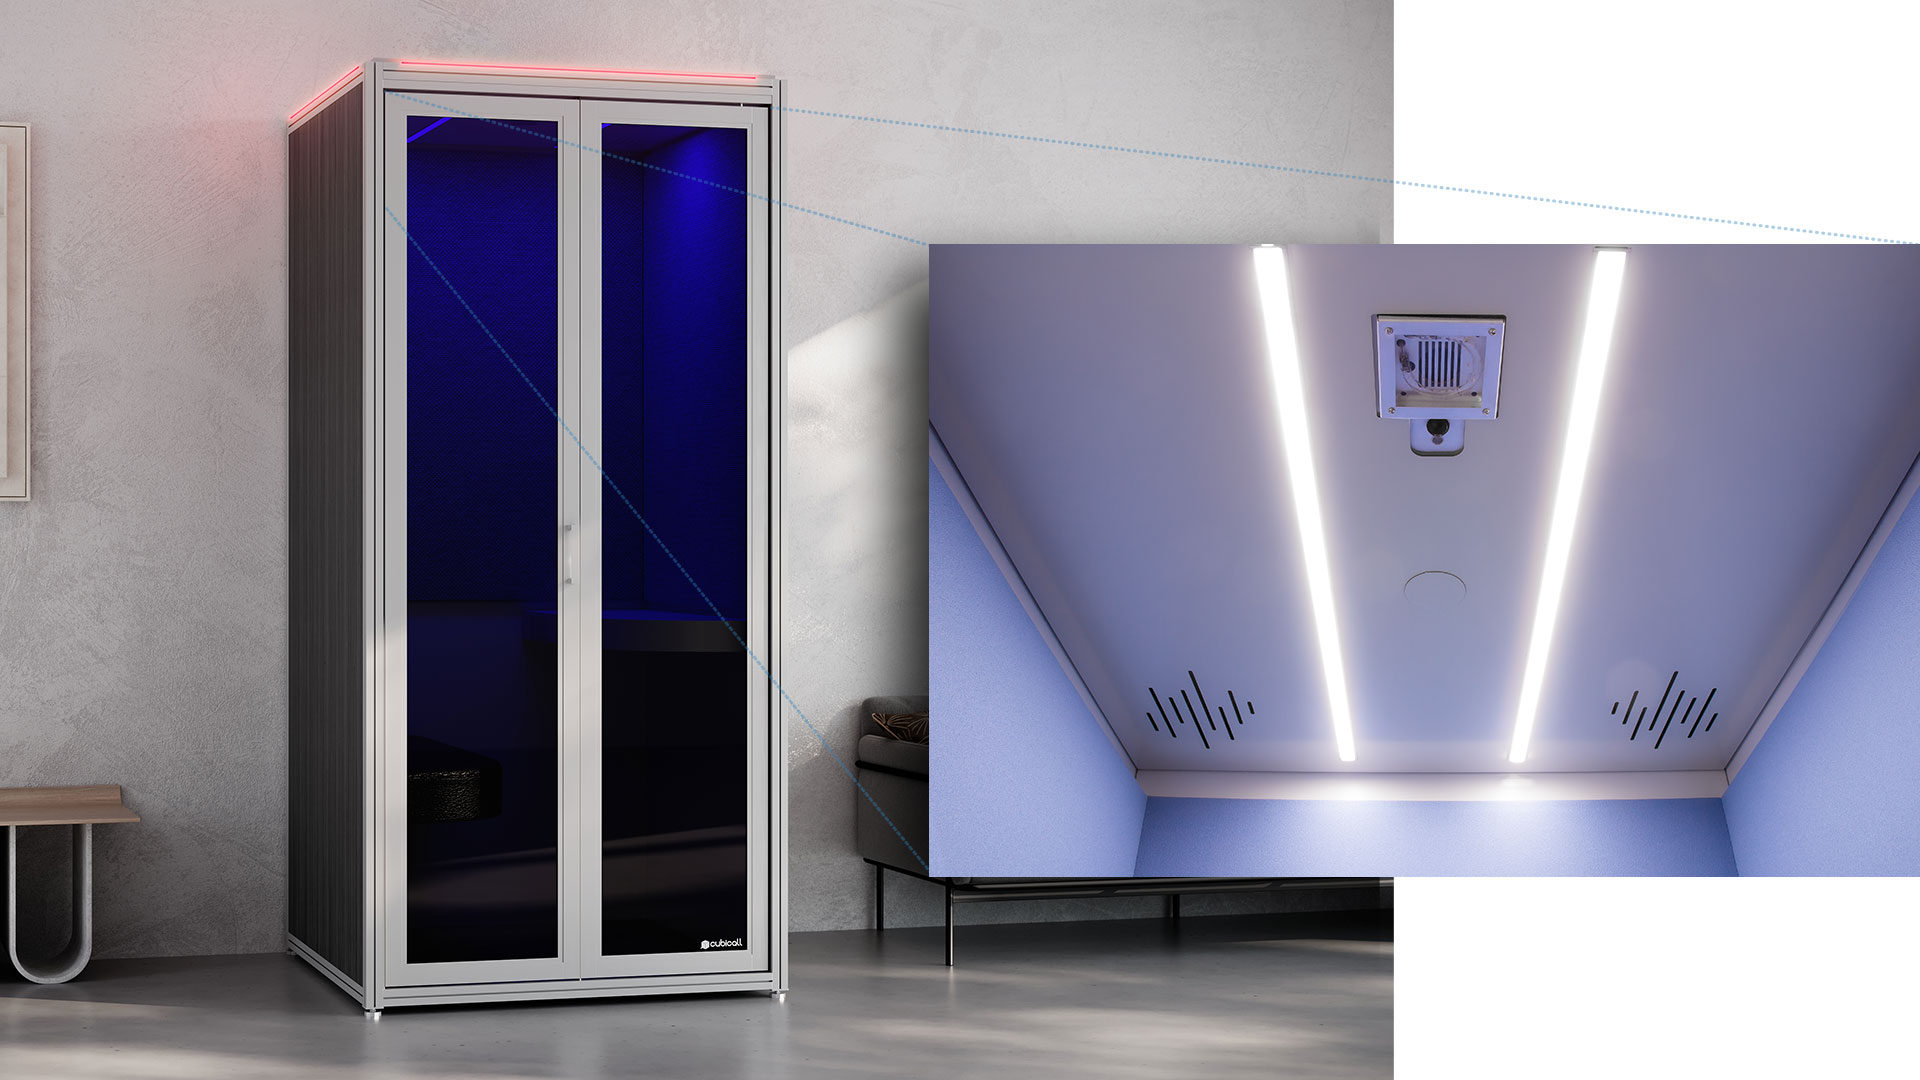 UV Phone Booth for After-use Disinfection Features